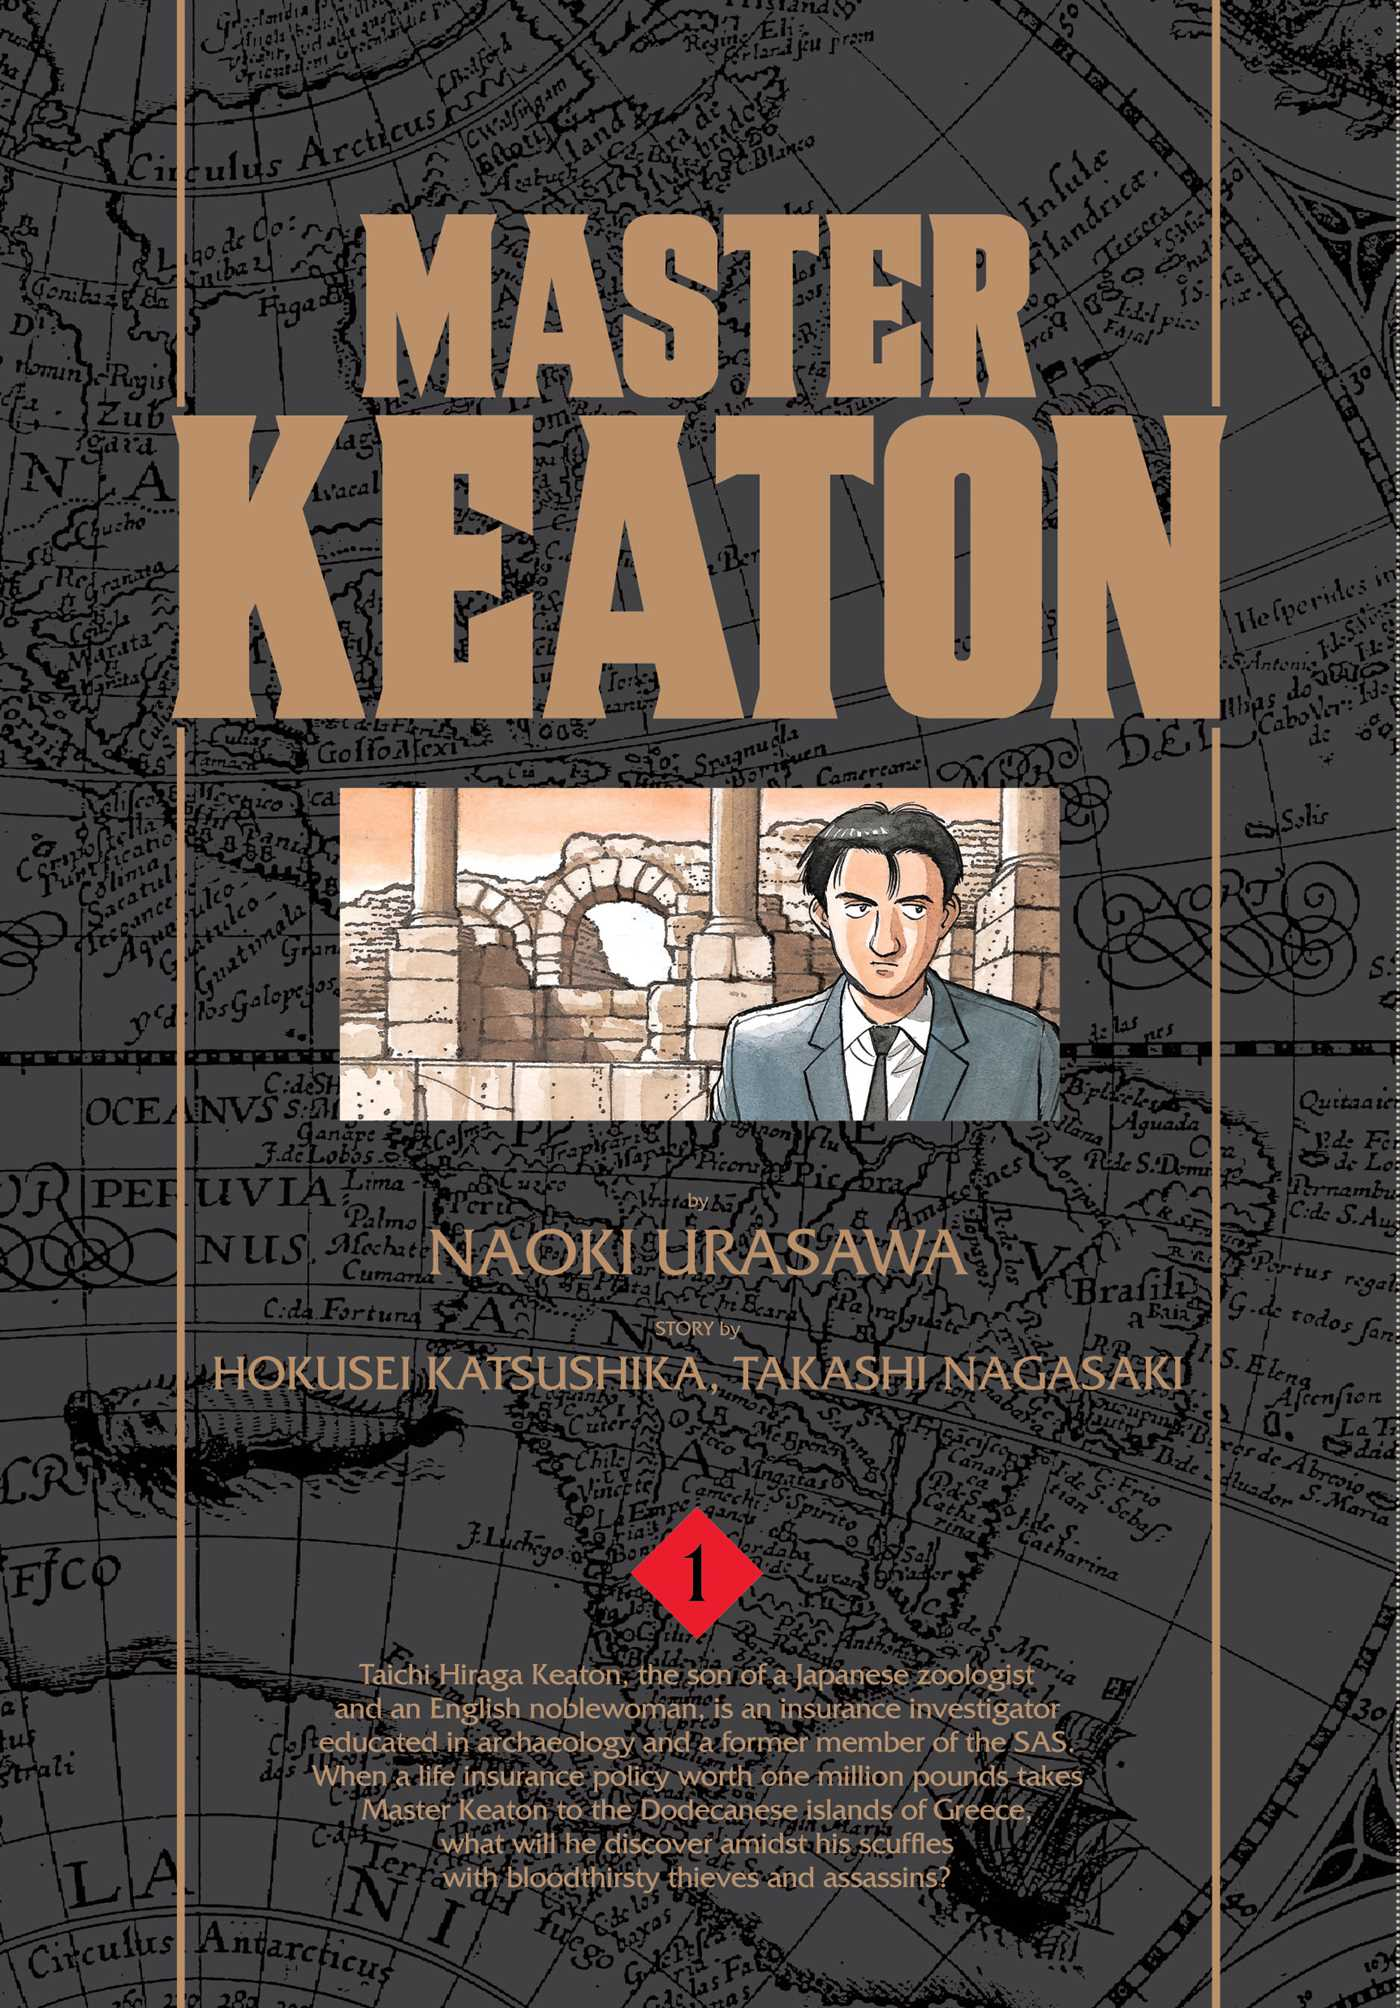 Master-keaton-vol-1-9781421575896_hr